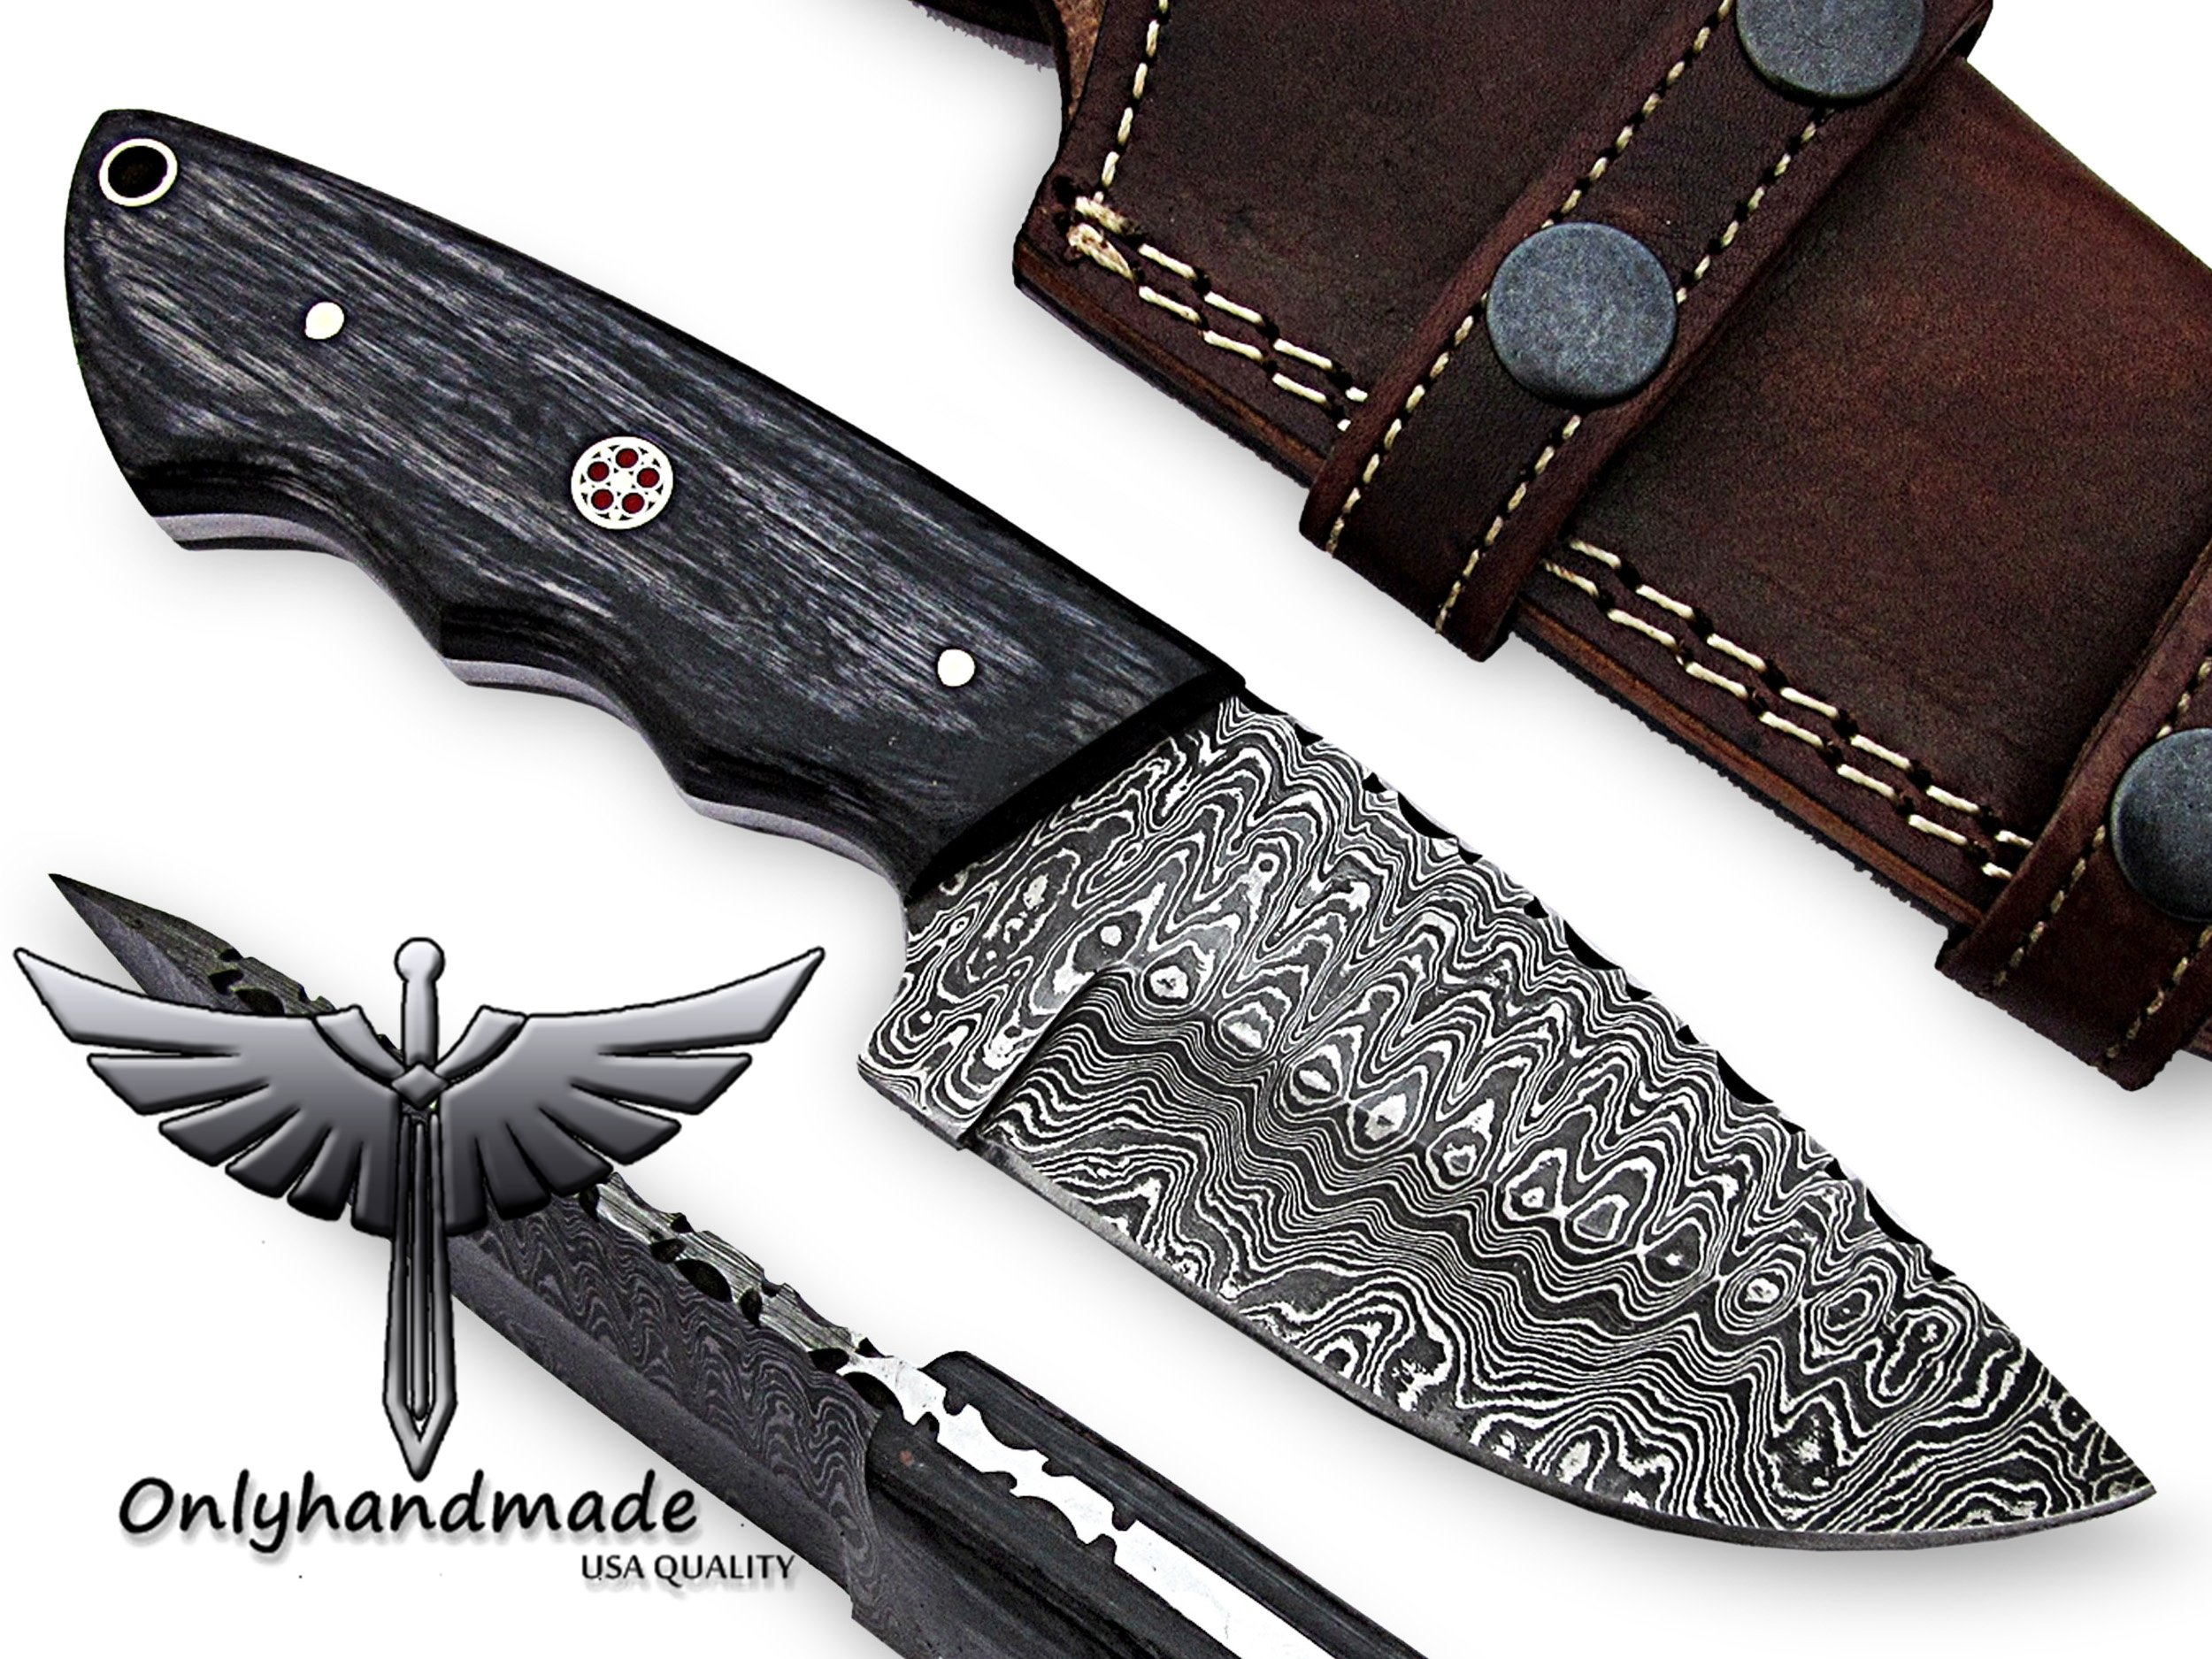 onlyhandmade 7.75'' Beautiful Damascus Knife Made of Remarkable Damascus Steel and Exotic Wood -Its A Hunting Knife with Sheath OHM-058